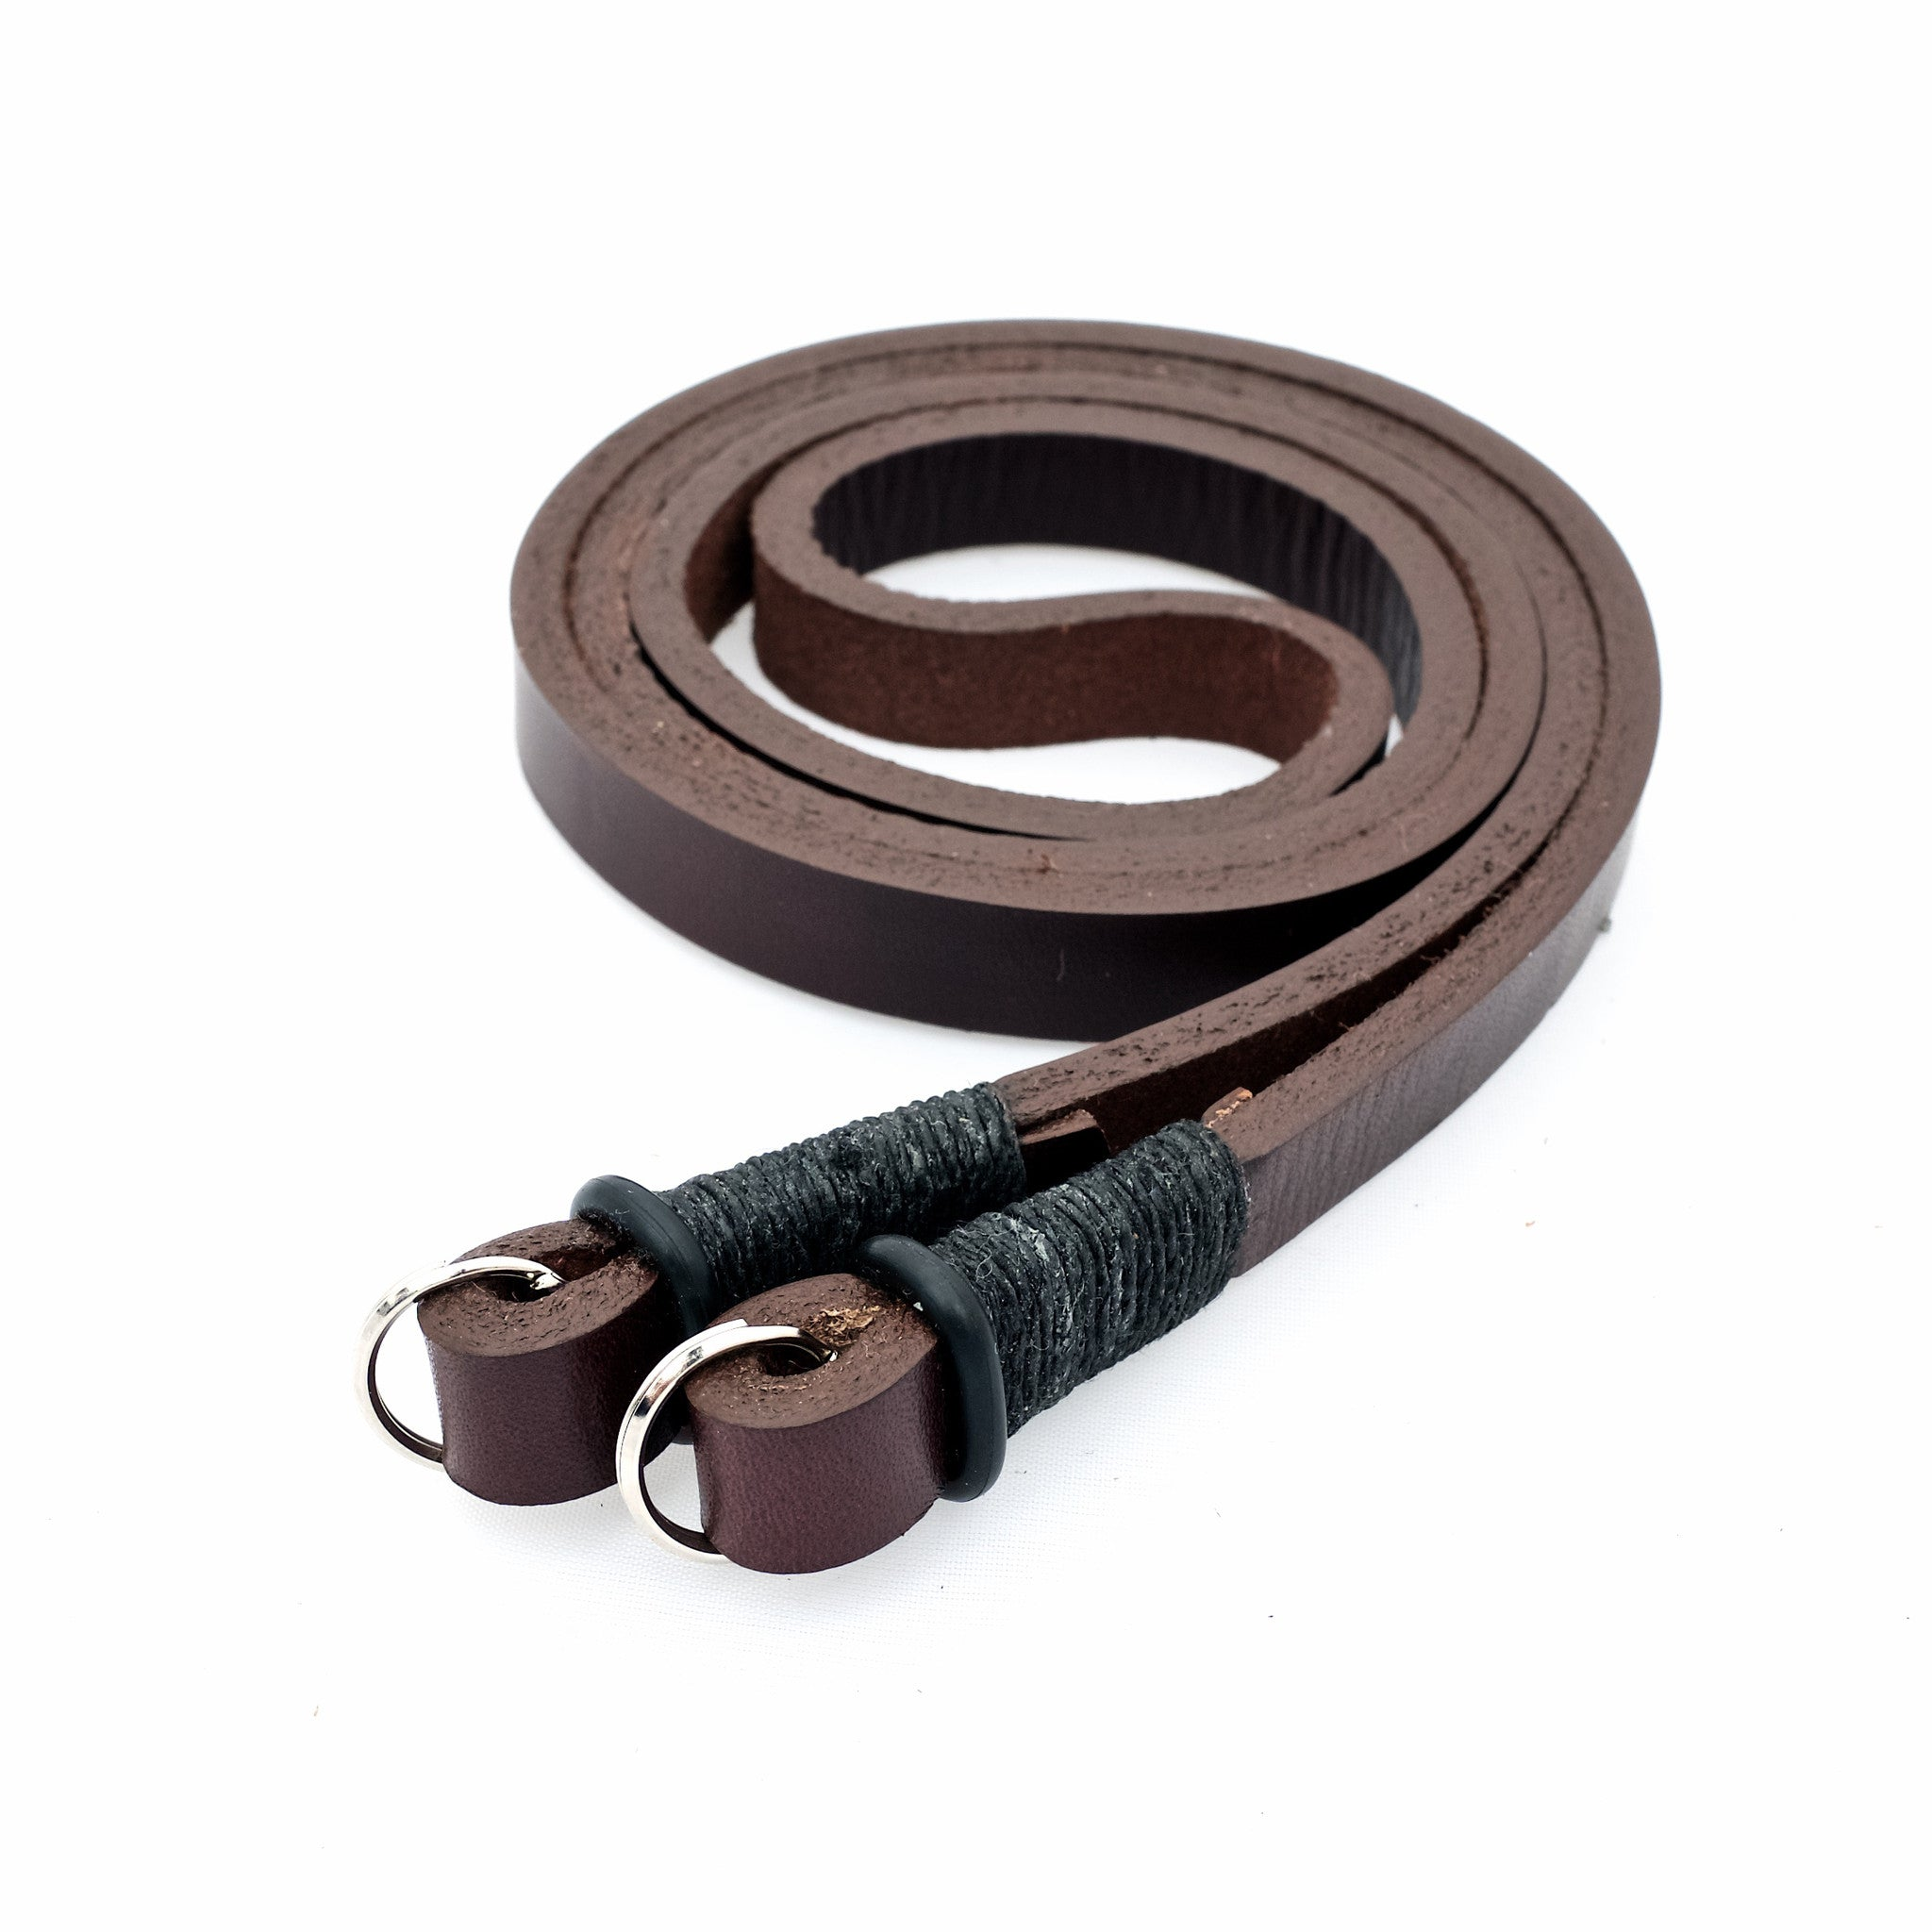 Horween Leather Camera Neck Strap by E3 Supply Co- Brown/Black